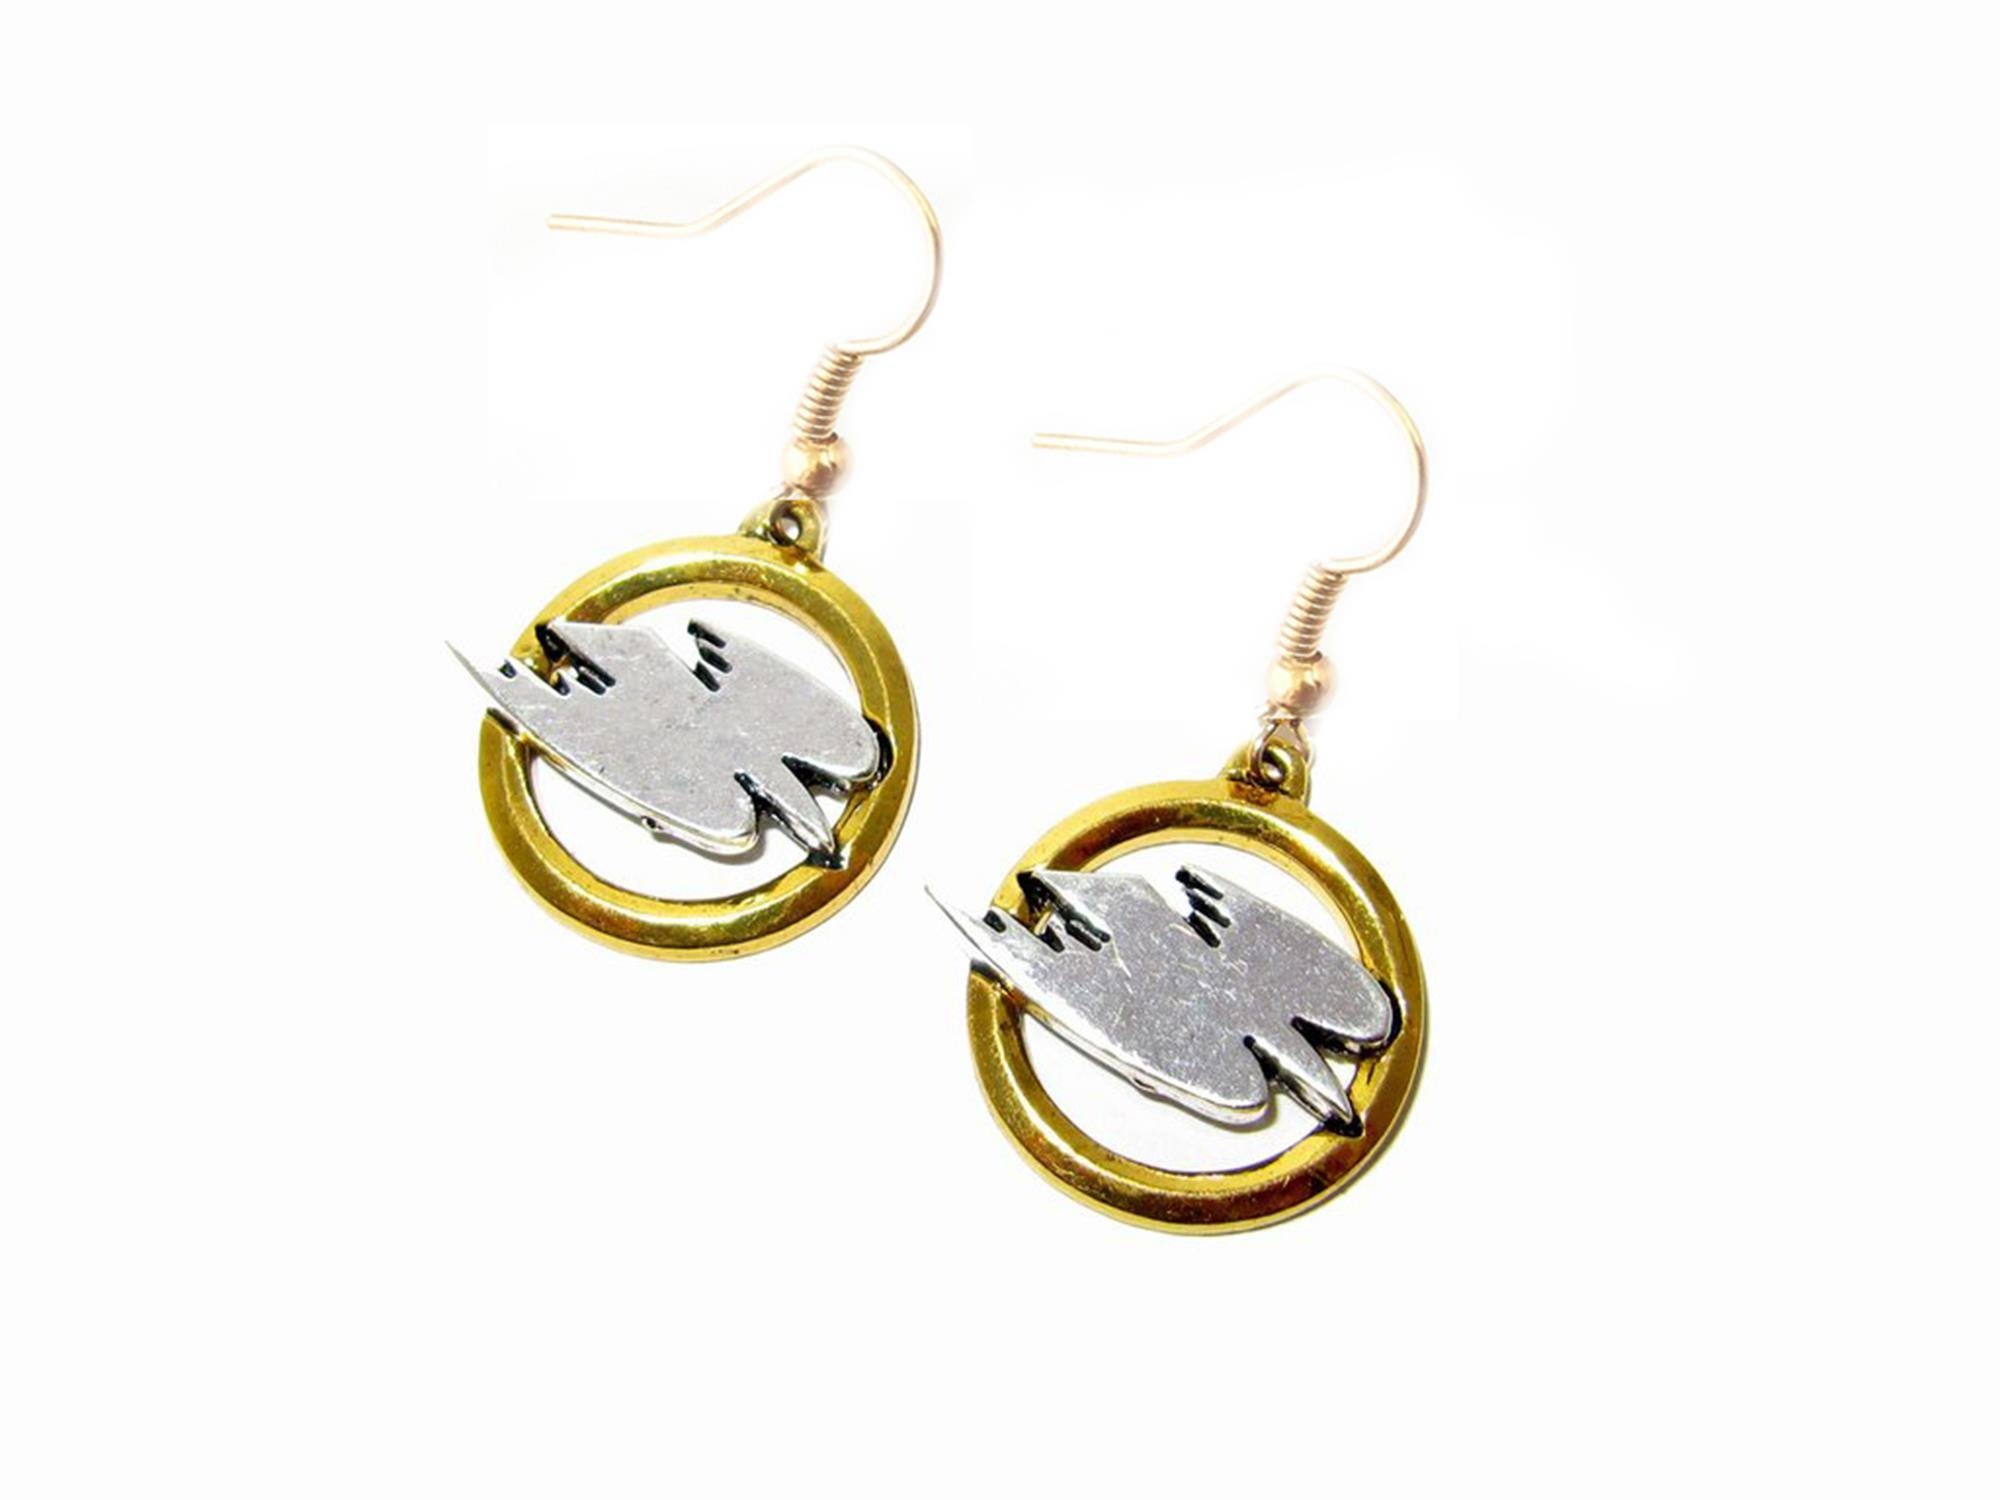 Outlander Legends Of Tomorrow White Canary Earring Dangles In Gift Box From